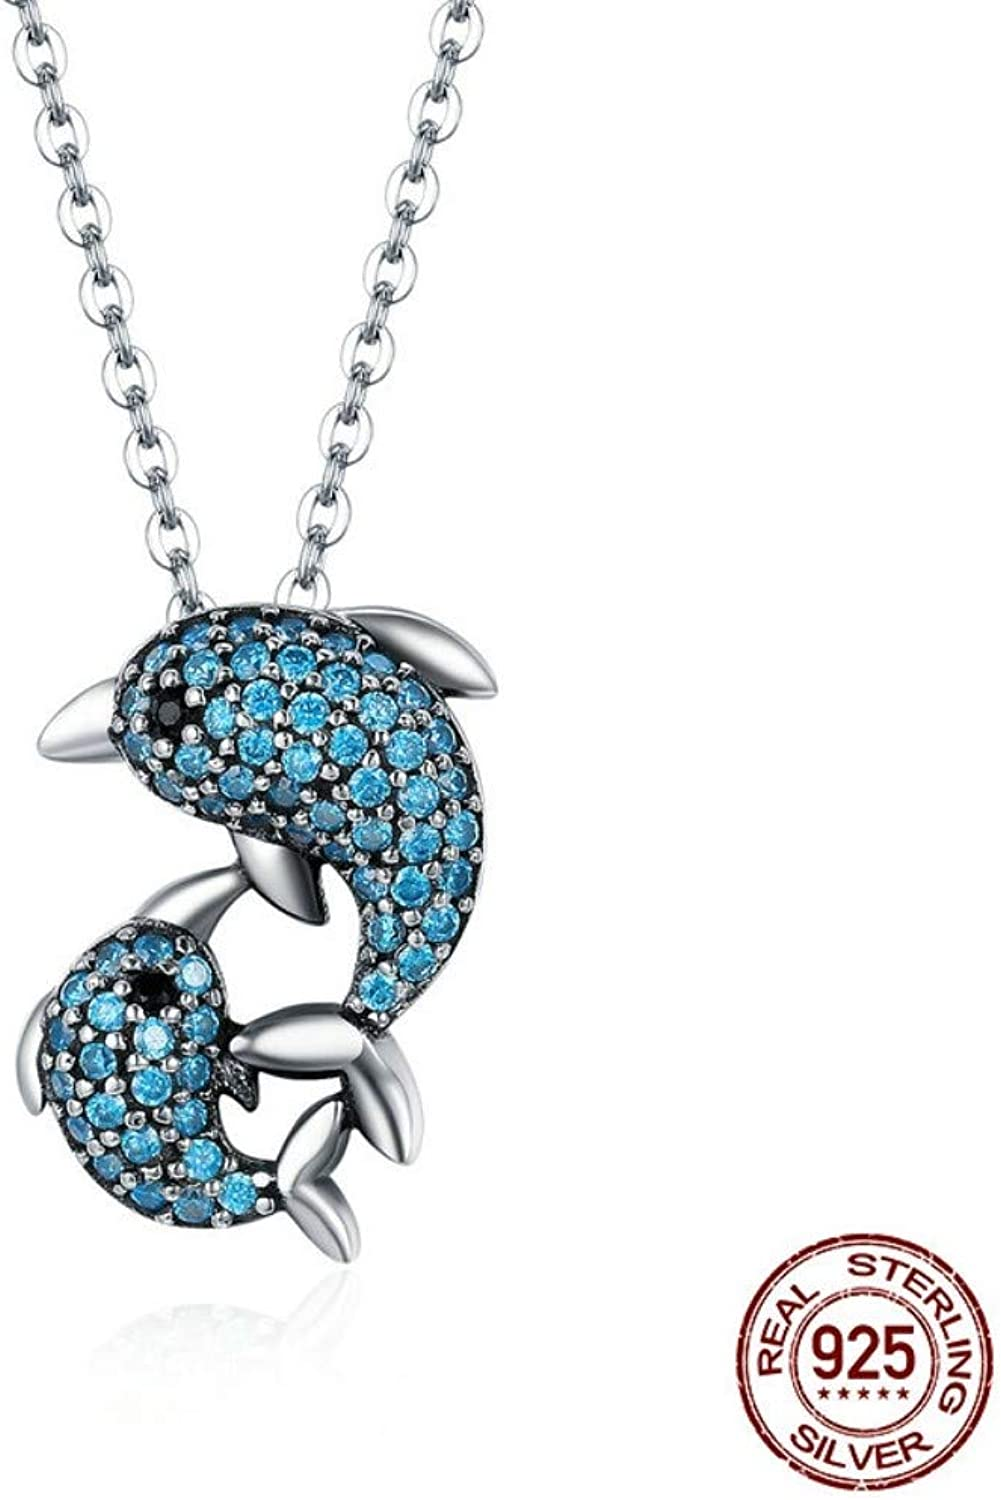 QMM necklace Pendant Authentic 925 Sterling Silver Story of Clear Cz Pendant Necklaces for Women Luxury Sterling Silver Jewelry